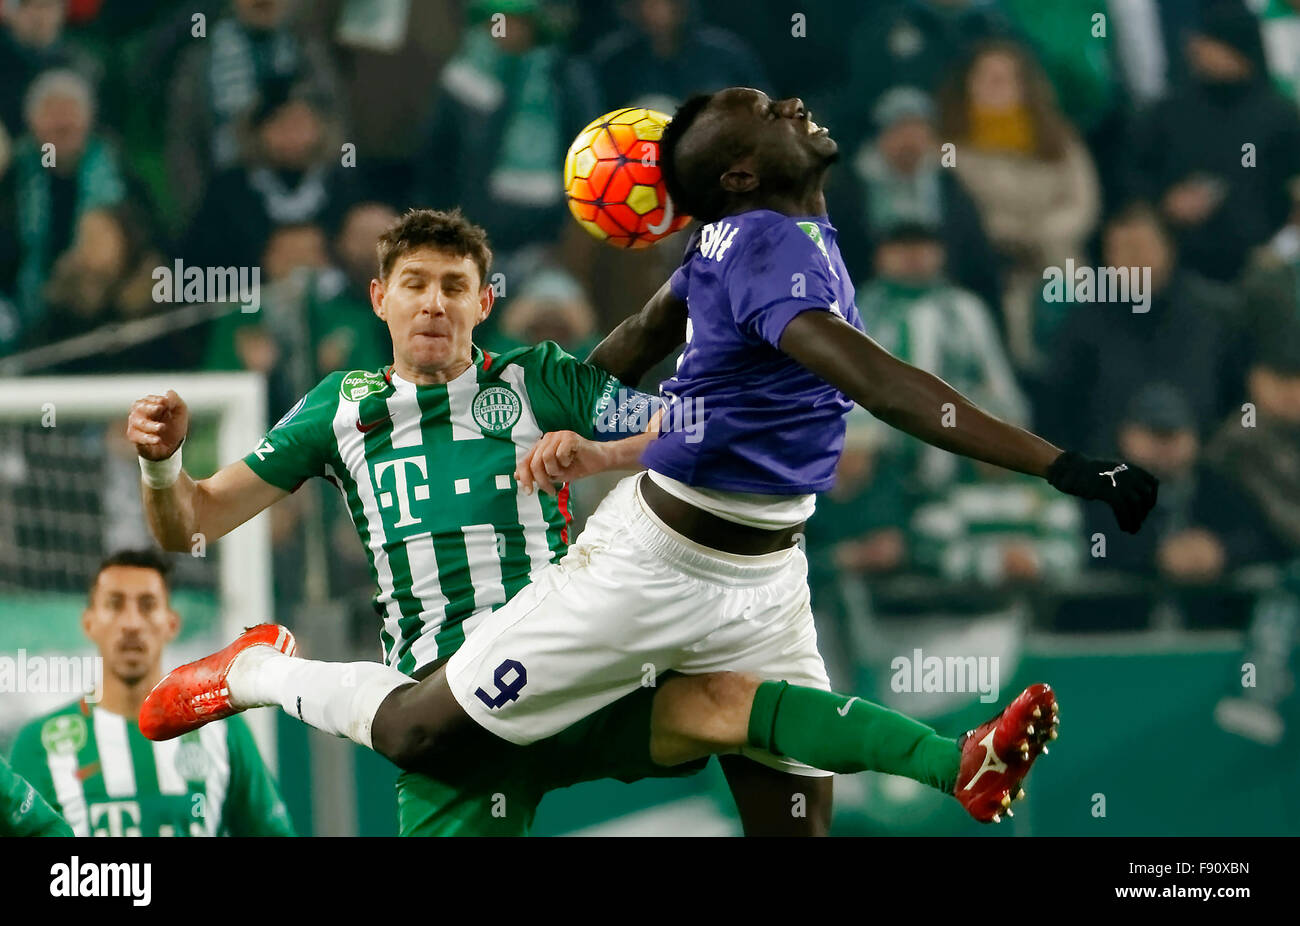 Budapest, Hungary. 12th December, 2015. Air battle between Zoltan Gera of Ferencvaros (l) and Mbaye Diagne of Ujpest - Stock Image